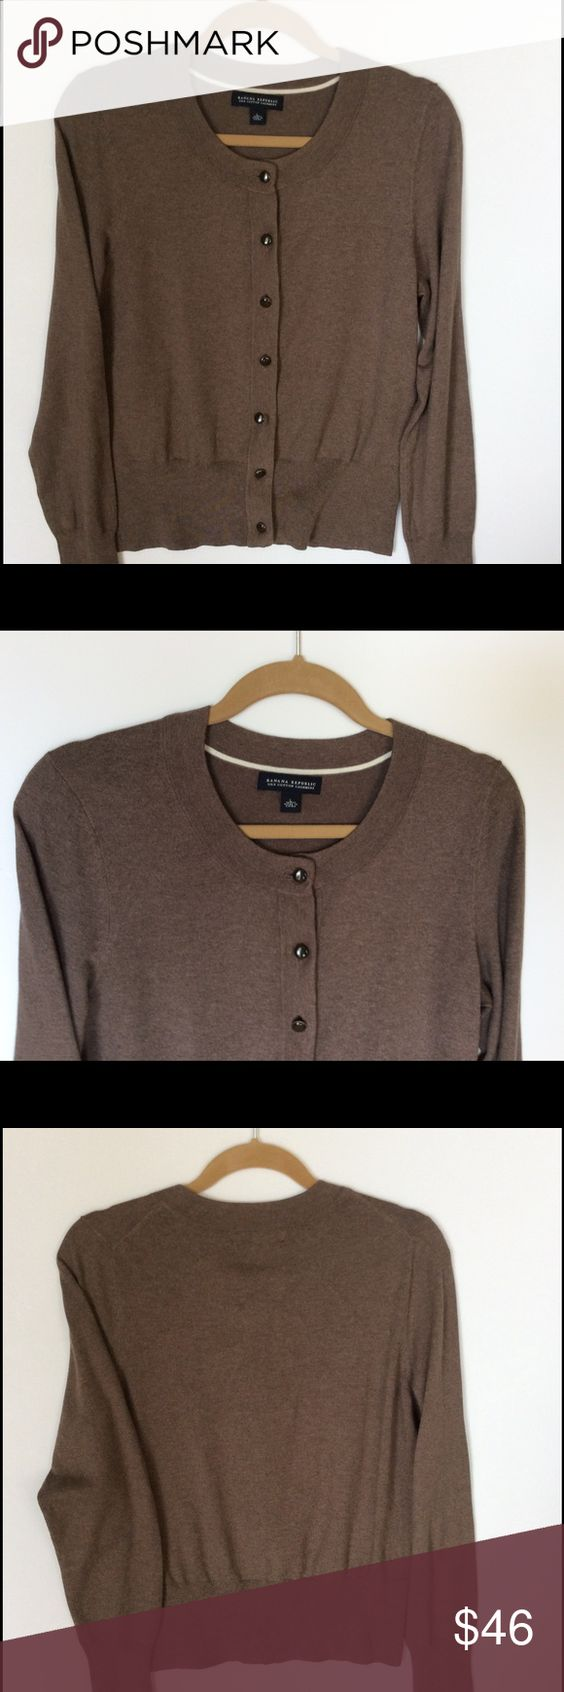 Banana Republic Sweater Banana Republic cardigan in brown size large, perfect staple for your closet that is chic as well as comfortable Banana Republic Sweaters Cardigans